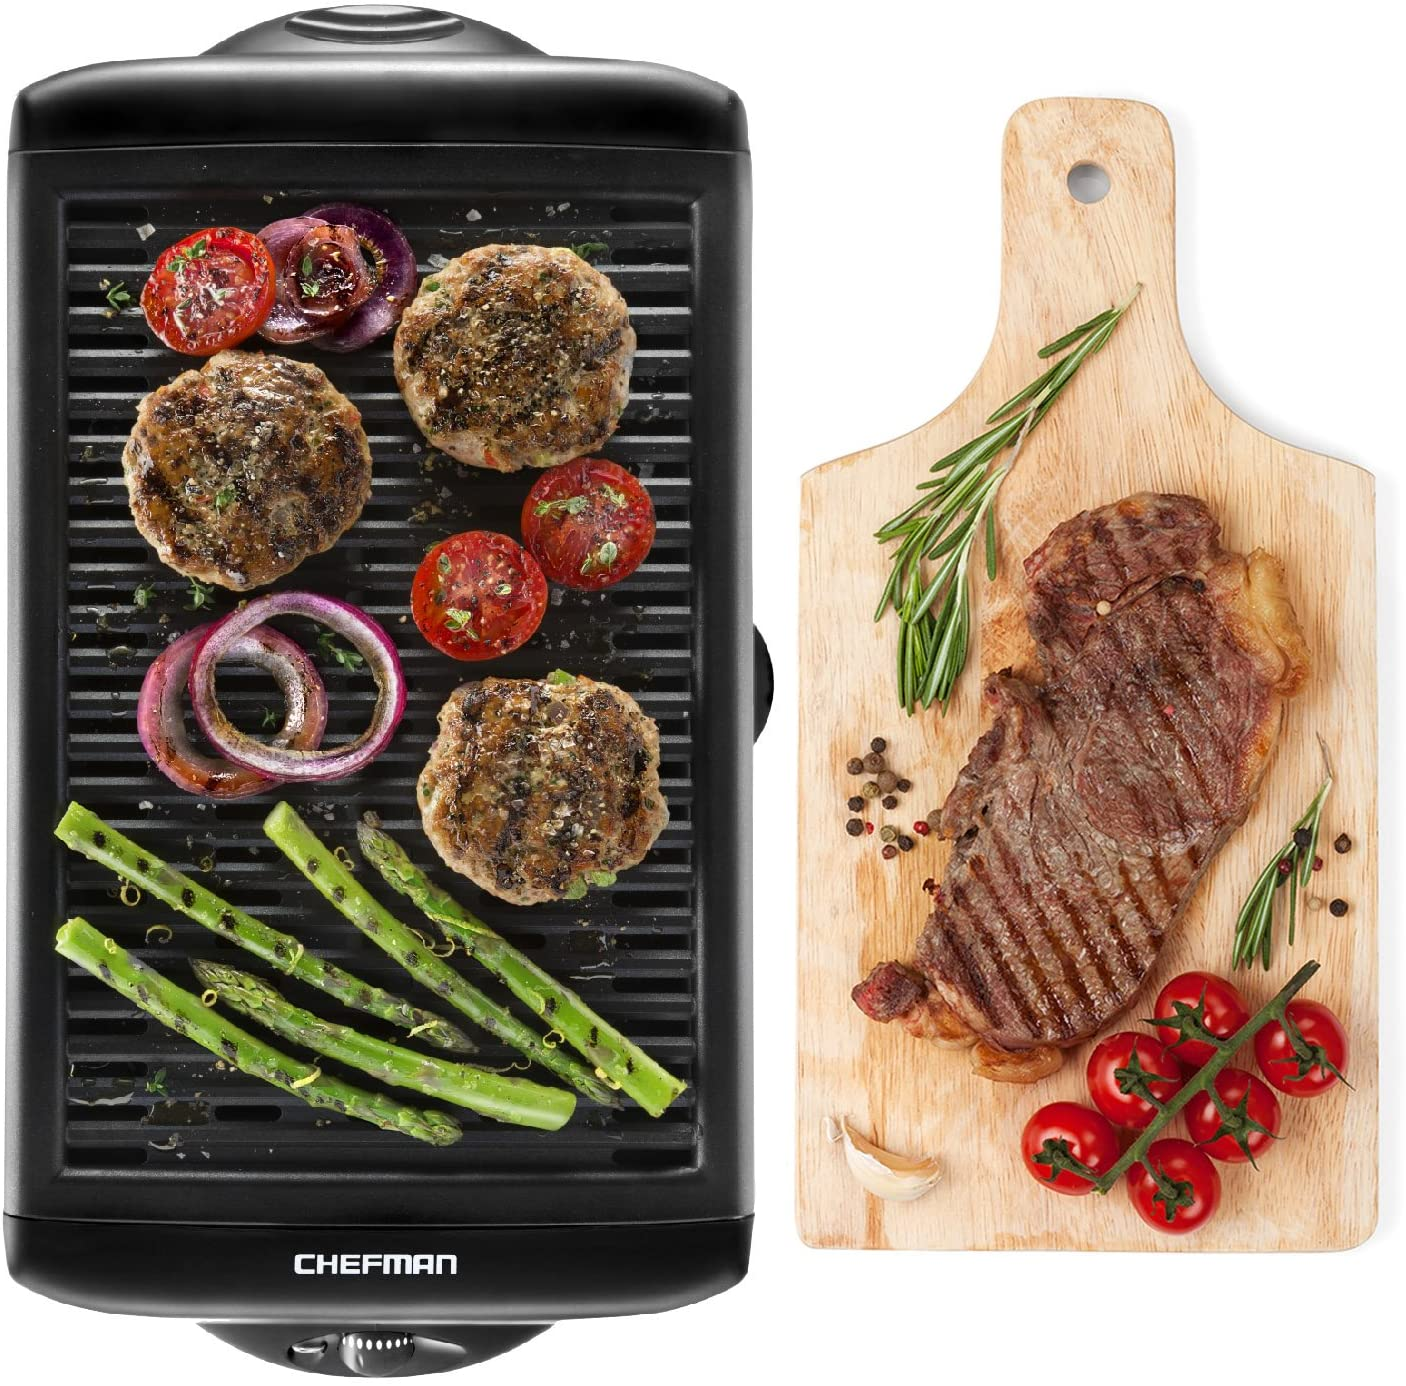 Review of Chefman Electric Smokeless Indoor Grill w/ Non-Stick Cooking Surface